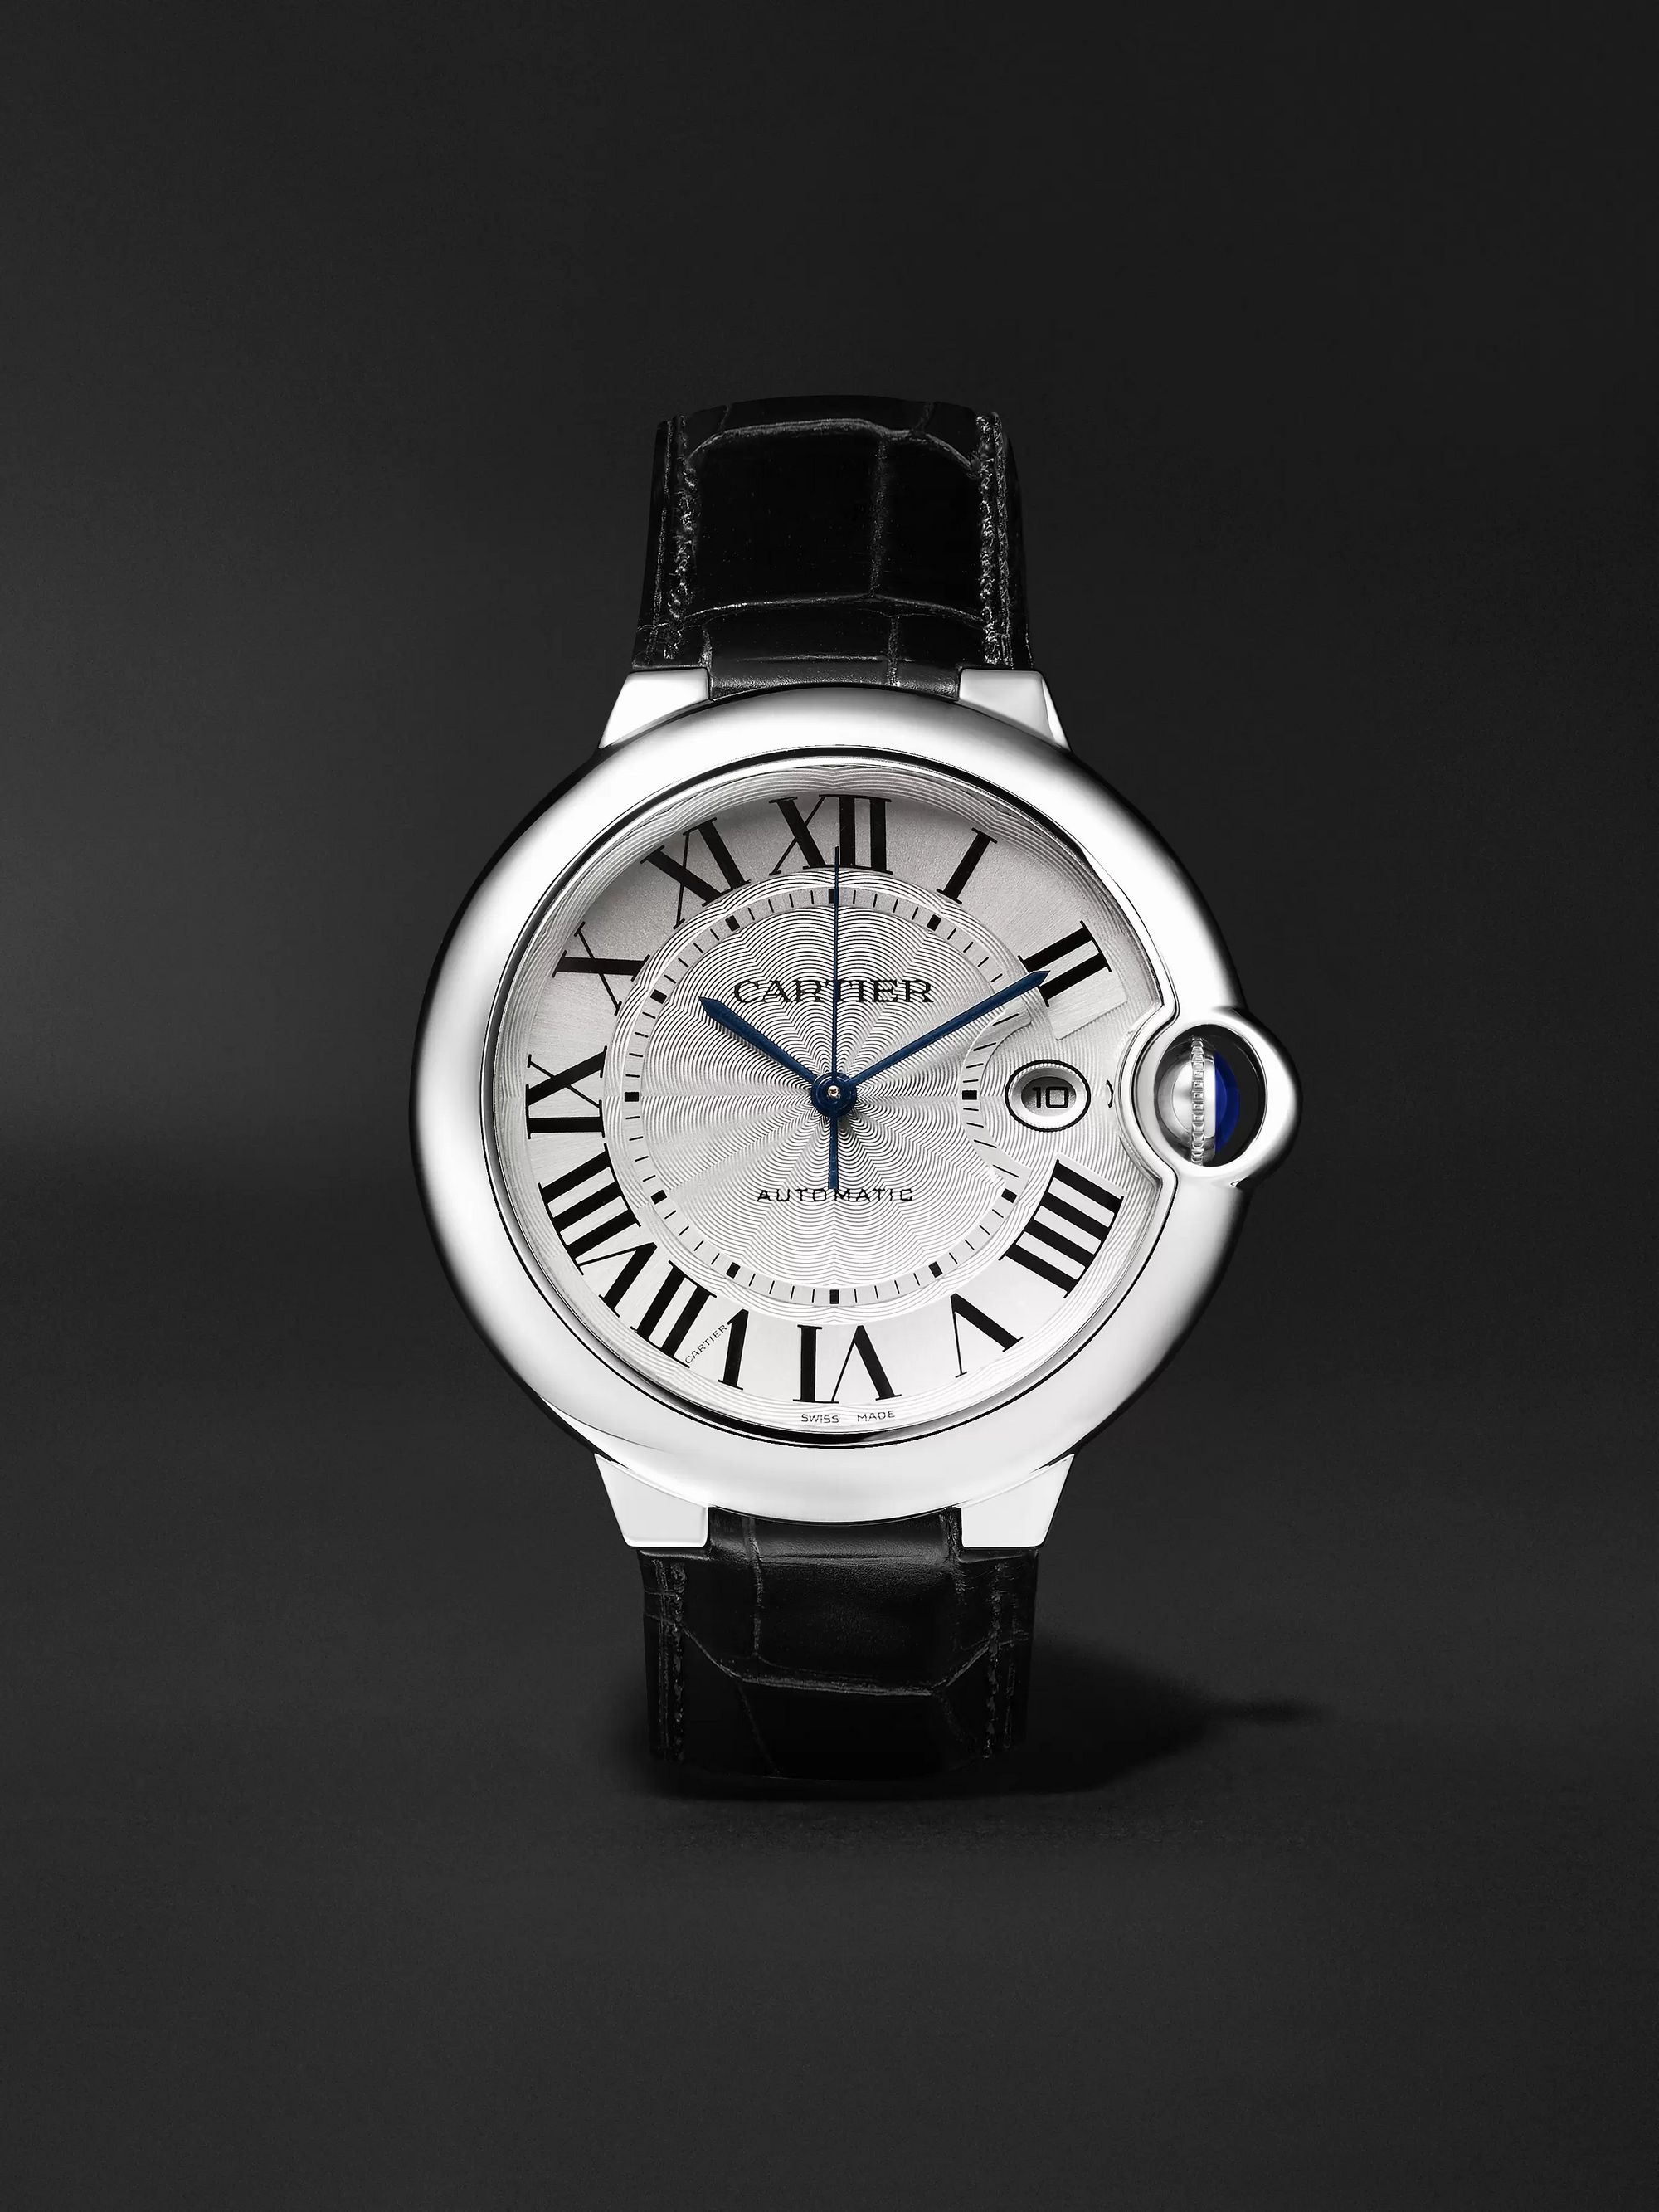 Cartier Ballon Bleu Automatic 42mm Stainless Steel and Alligator Watch, Ref. No. CRW69016Z4